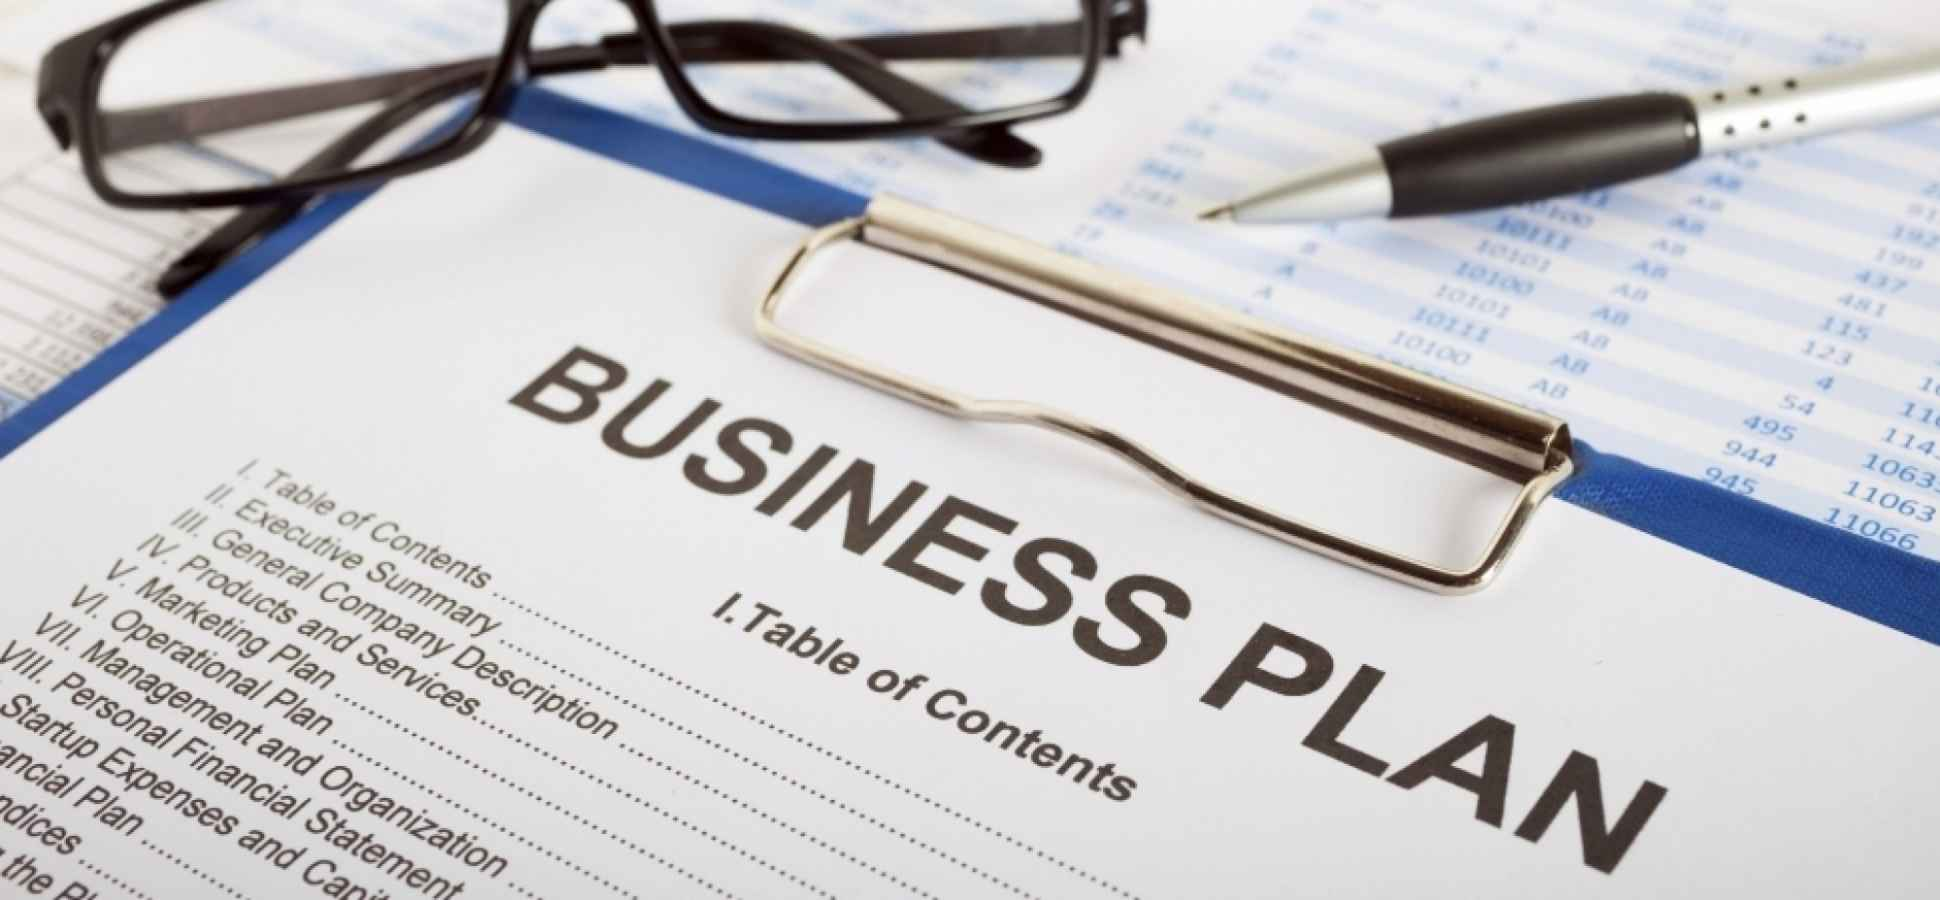 How To Write A Great Business Plan The Executive Summary